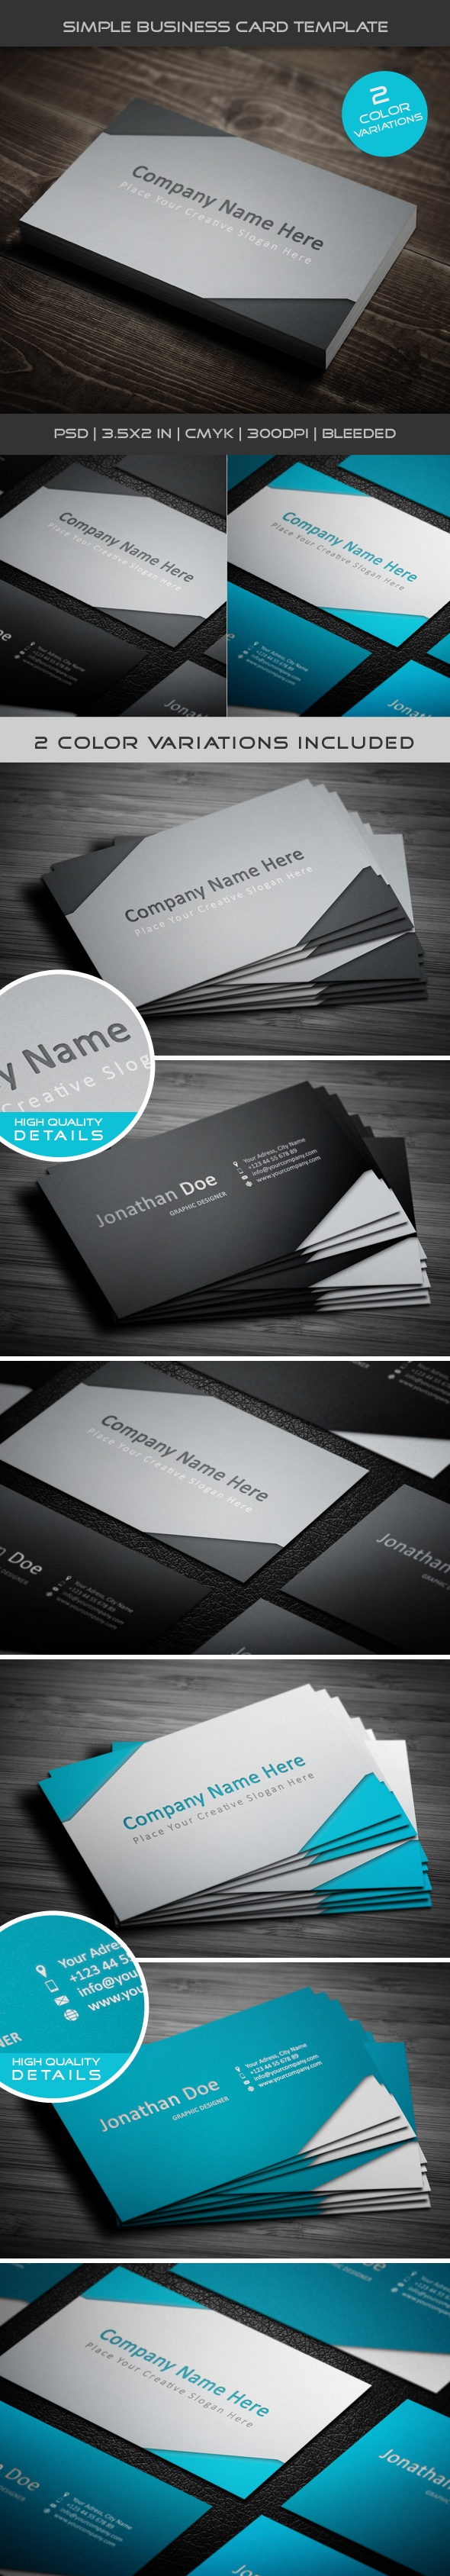 181 best free business cards images on pinterest